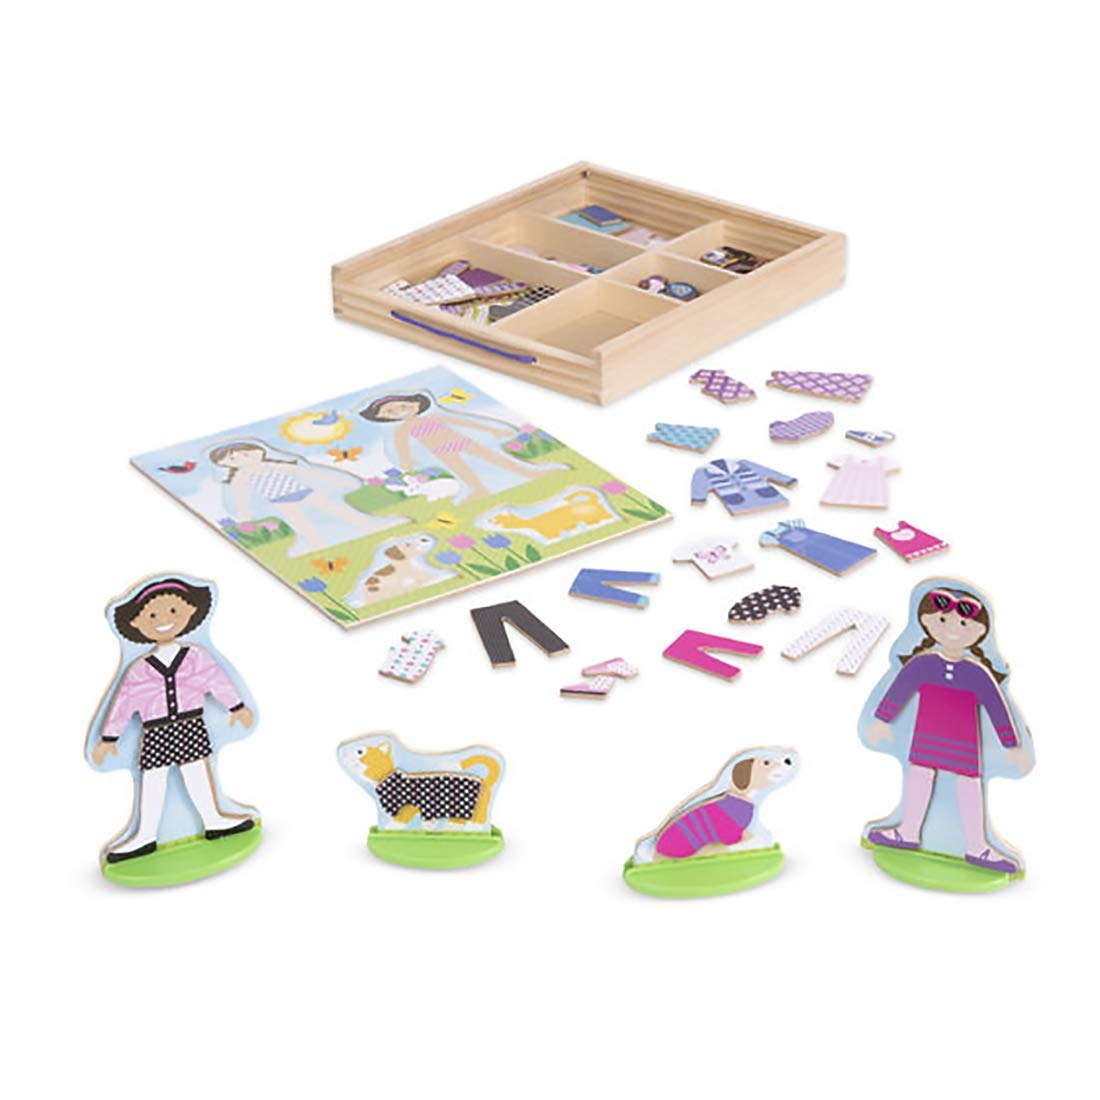 Best Friends Magnetic Figures Dress-Up Play Set - 3+ Years - 78 Pieces